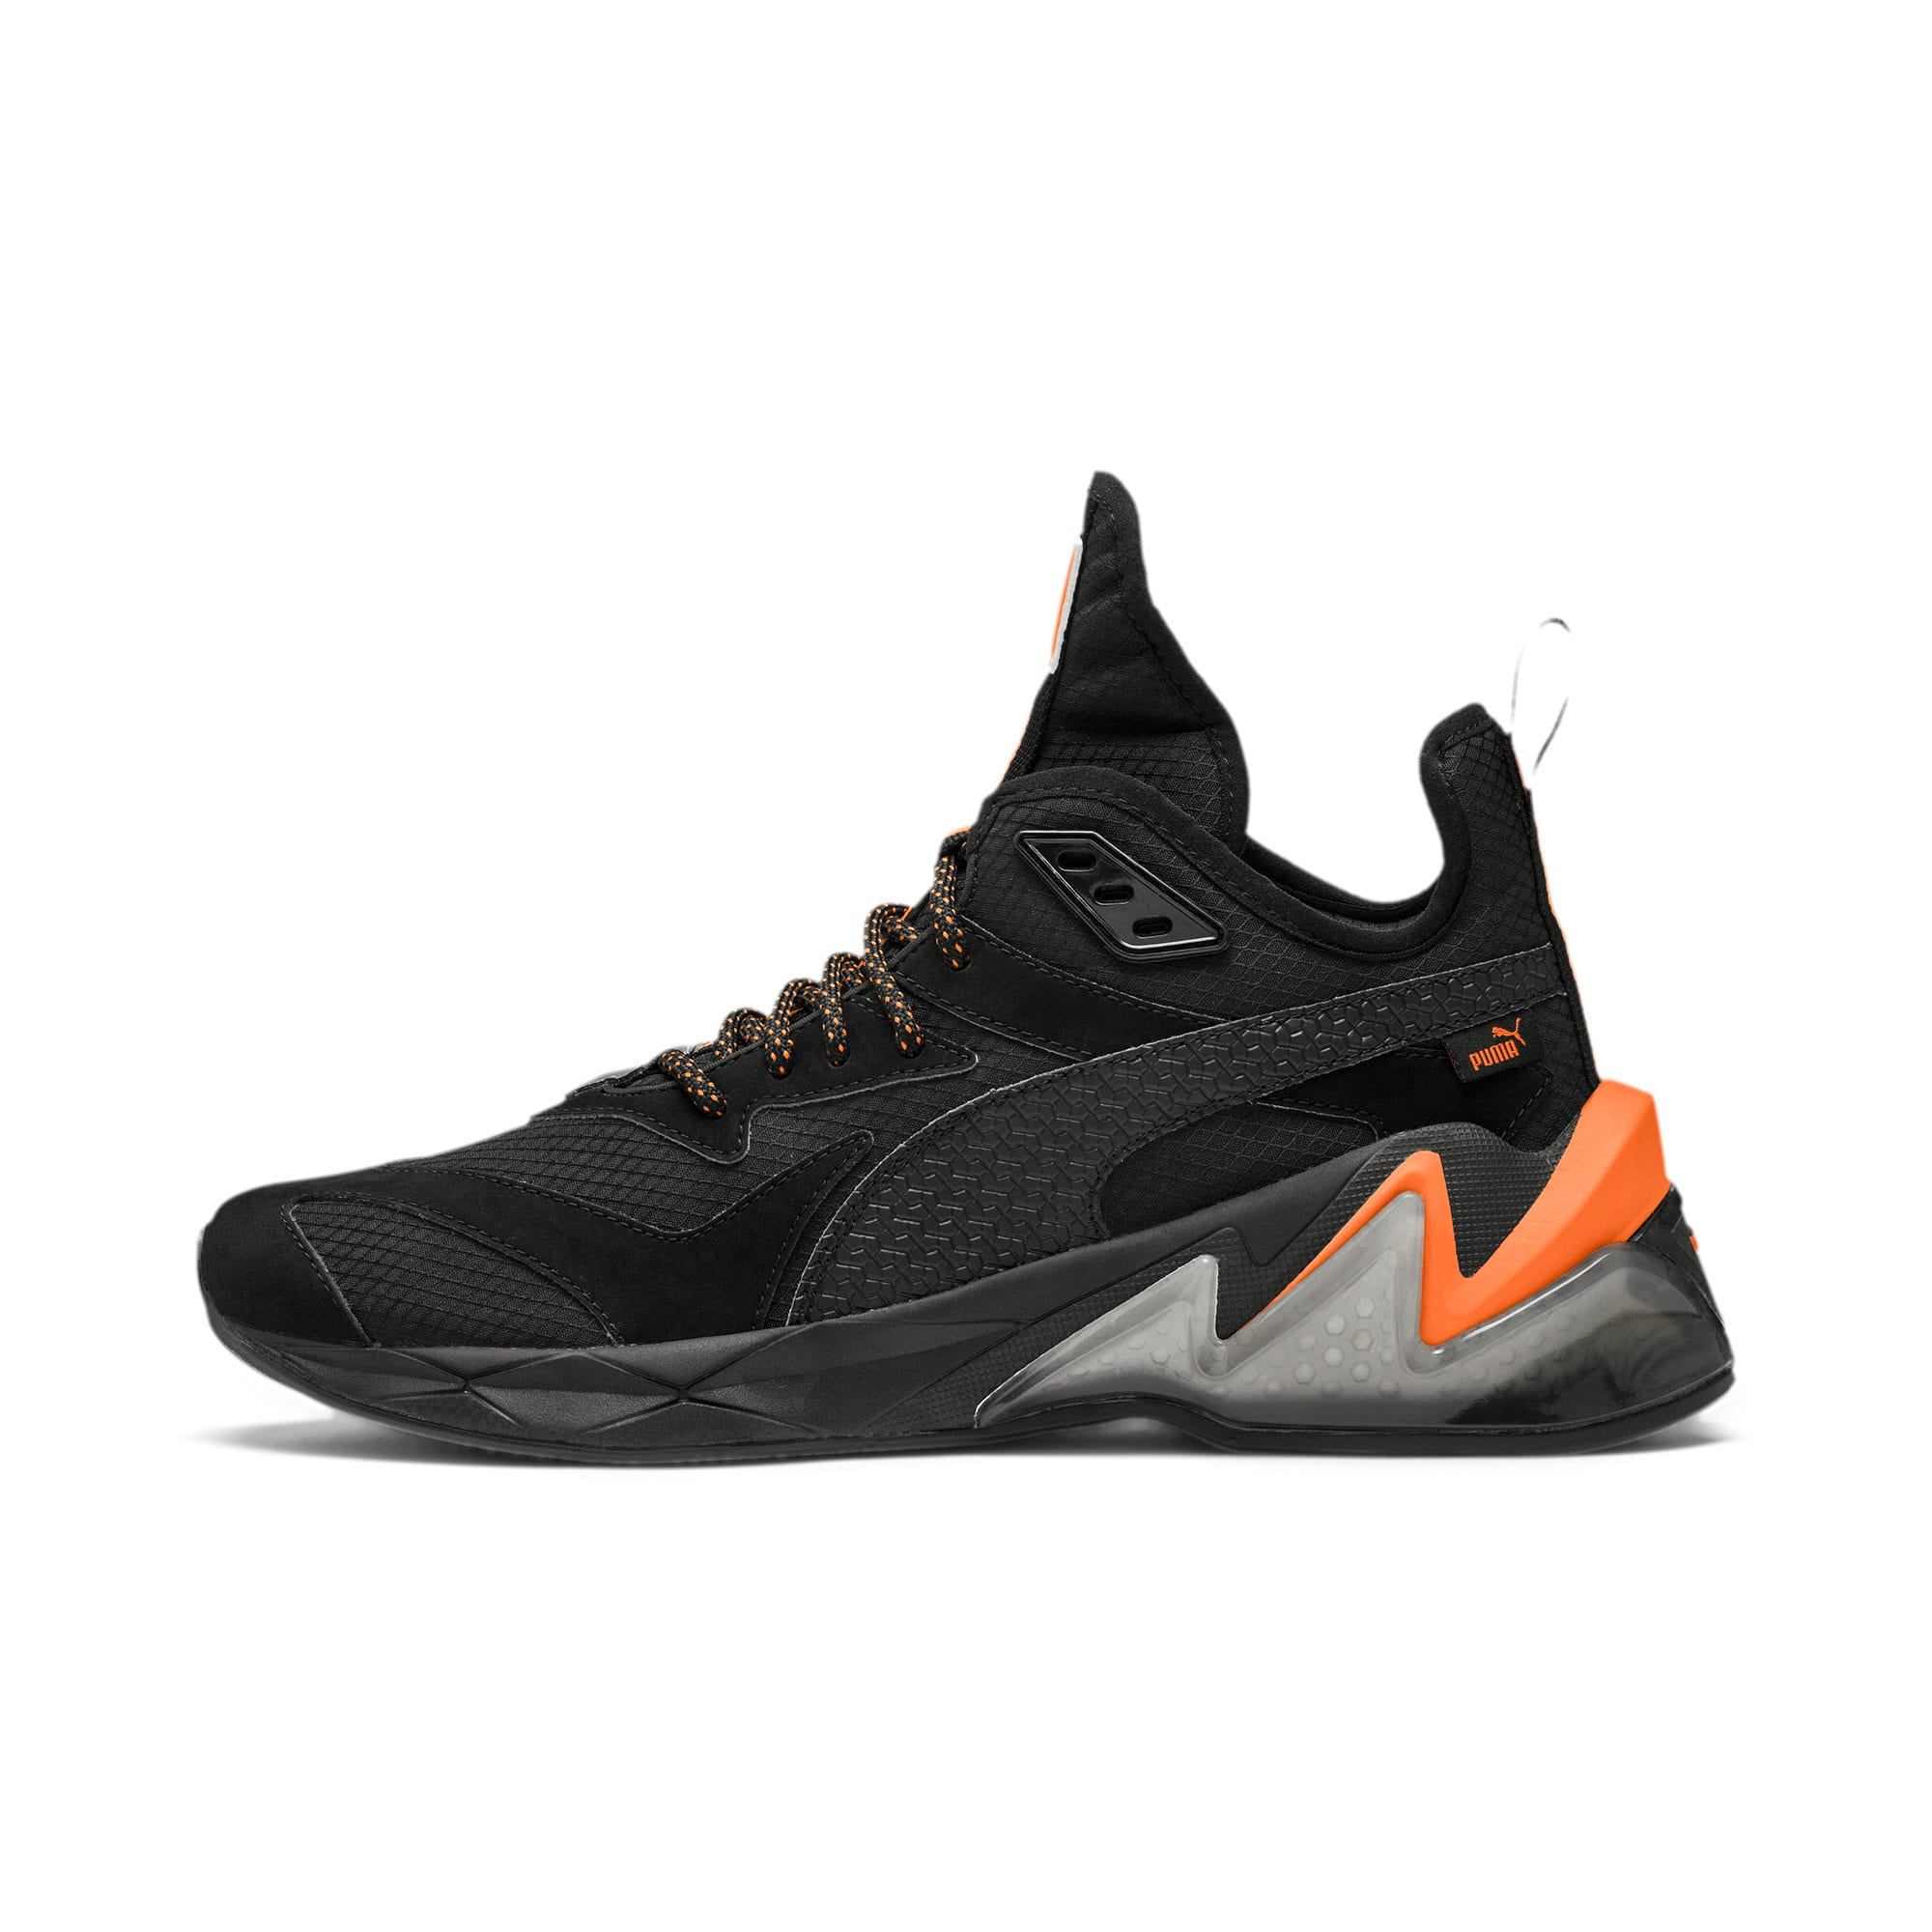 Thumbnail 1 of LQDCELL Origin Terrain Herren Trainingsschuhe, Puma Black-Jaffa Orange, medium